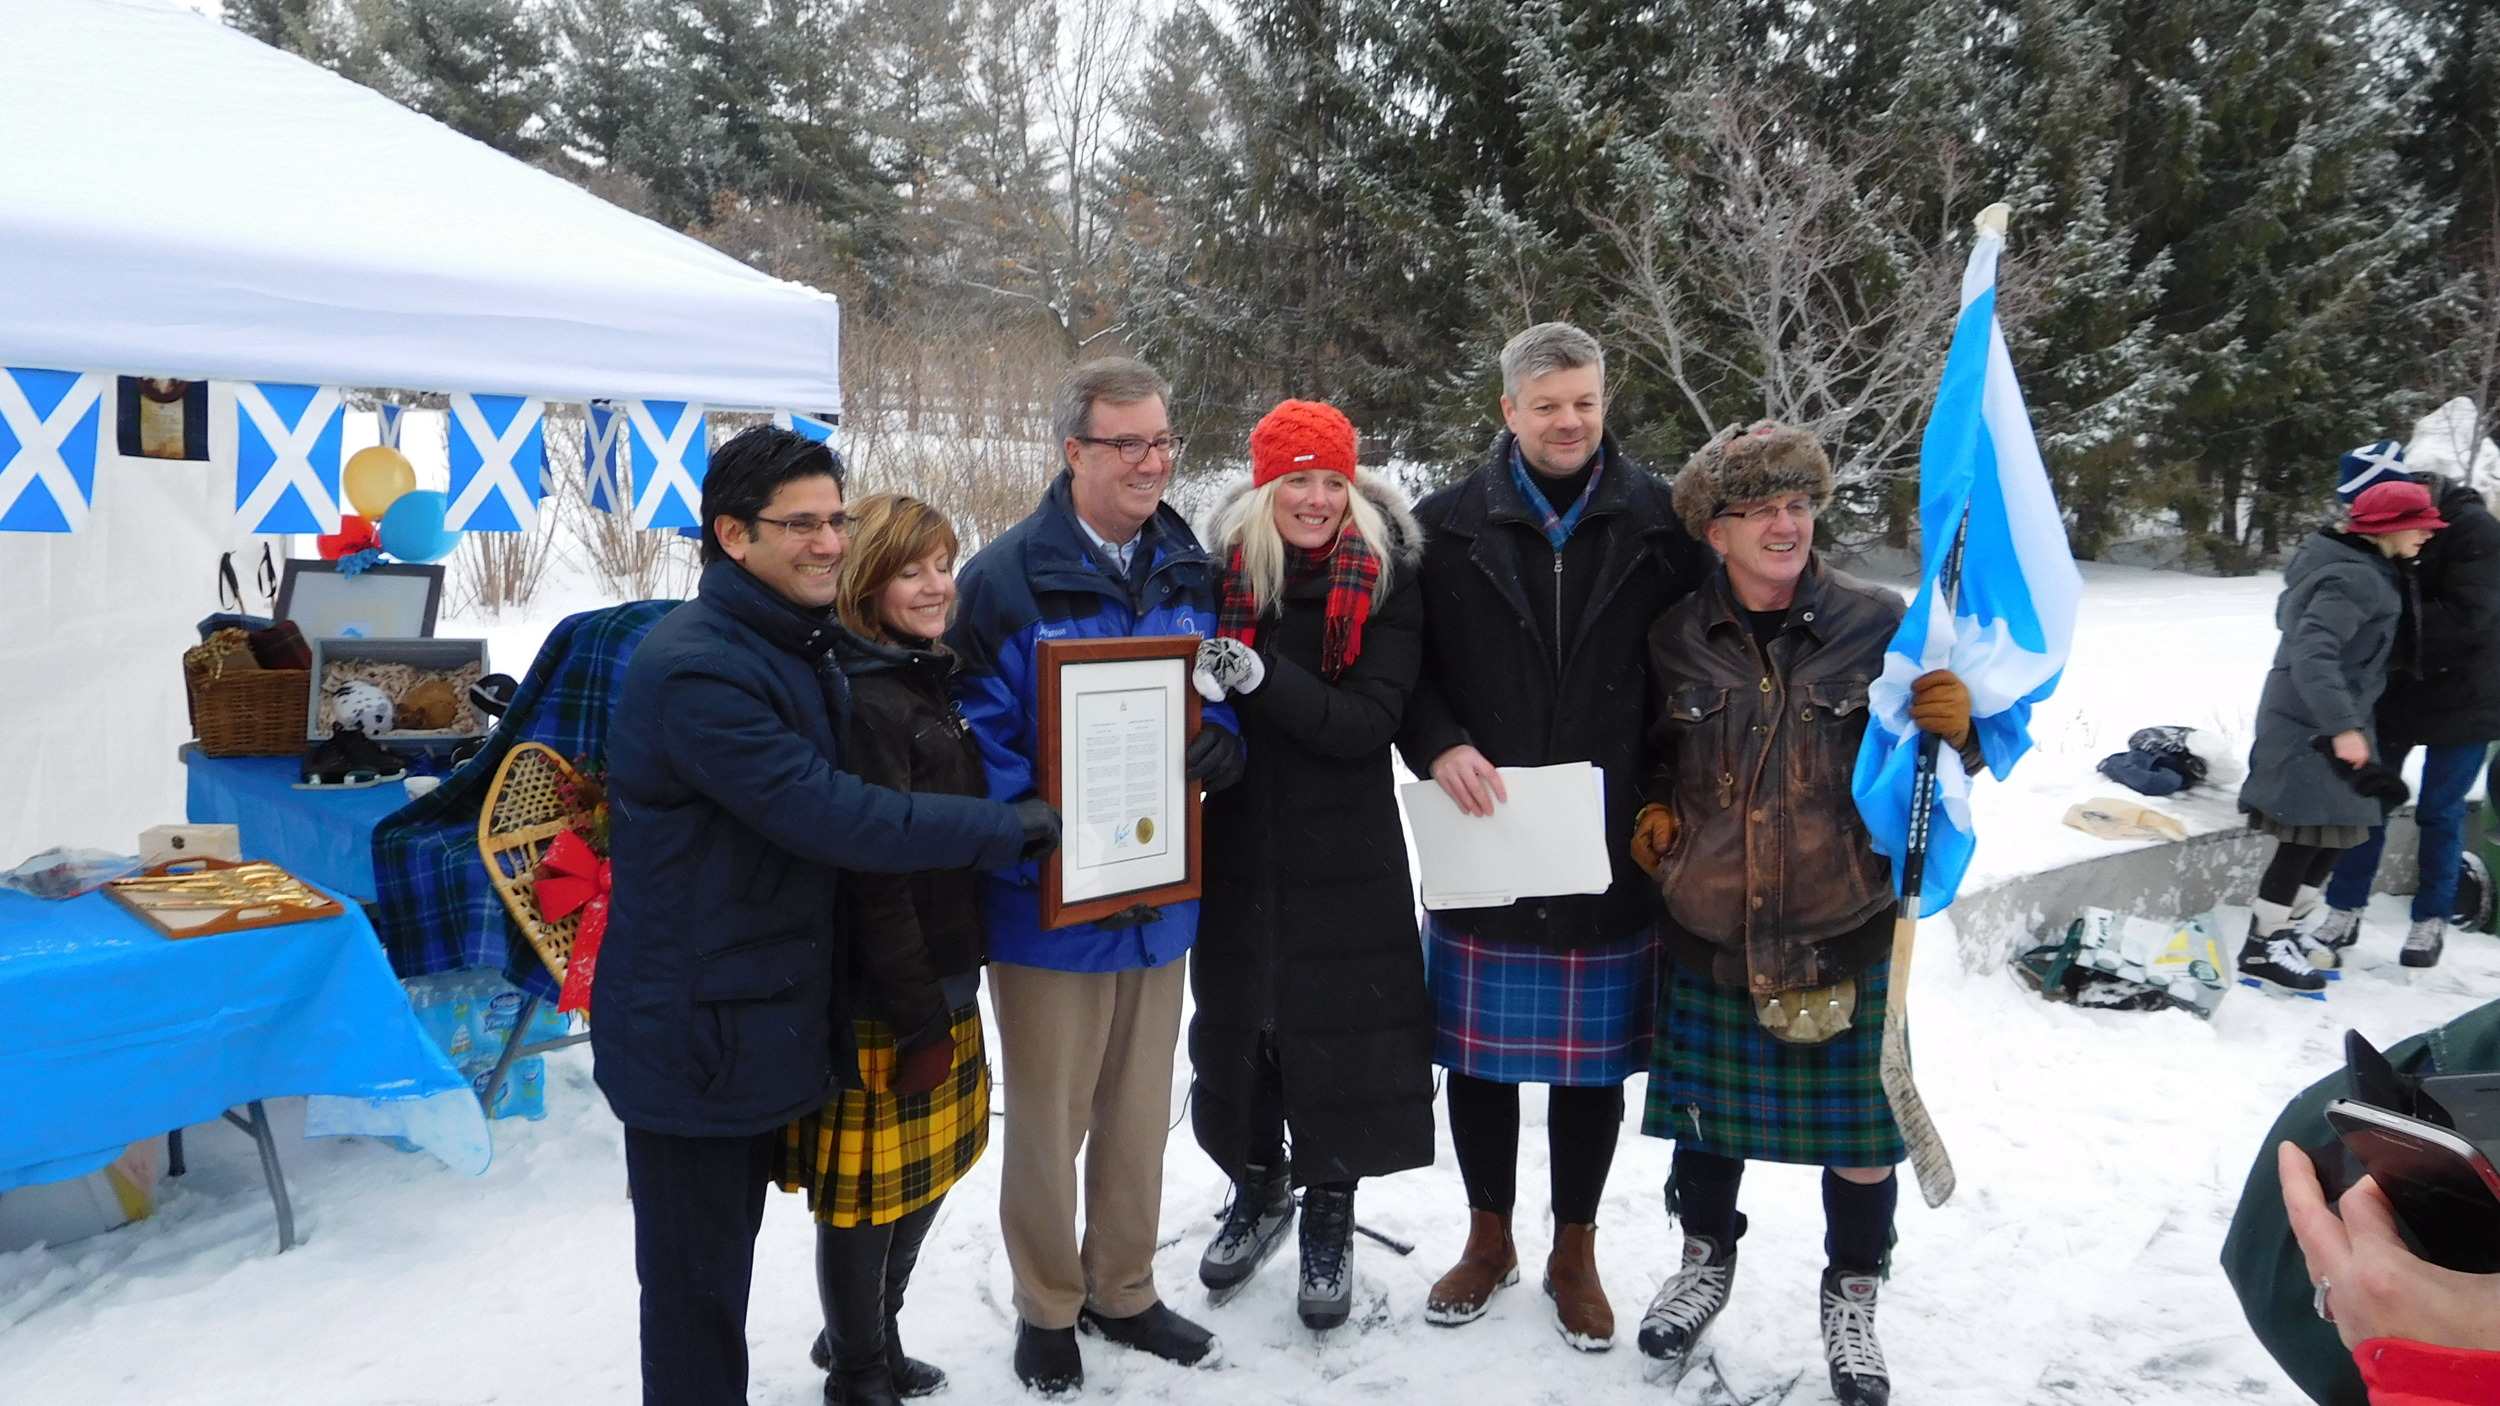 ....while the official party poses for pix. Left to right: Ottawa Centre MPP Yasir Naqvi, SSO Secretary Heather Theoret; Mayor Jim Watson; Ottawa Centre MP Catherine McKenna; SSO Executive Director John Ivison; SSO Skater-in-Chief Don Cummer.